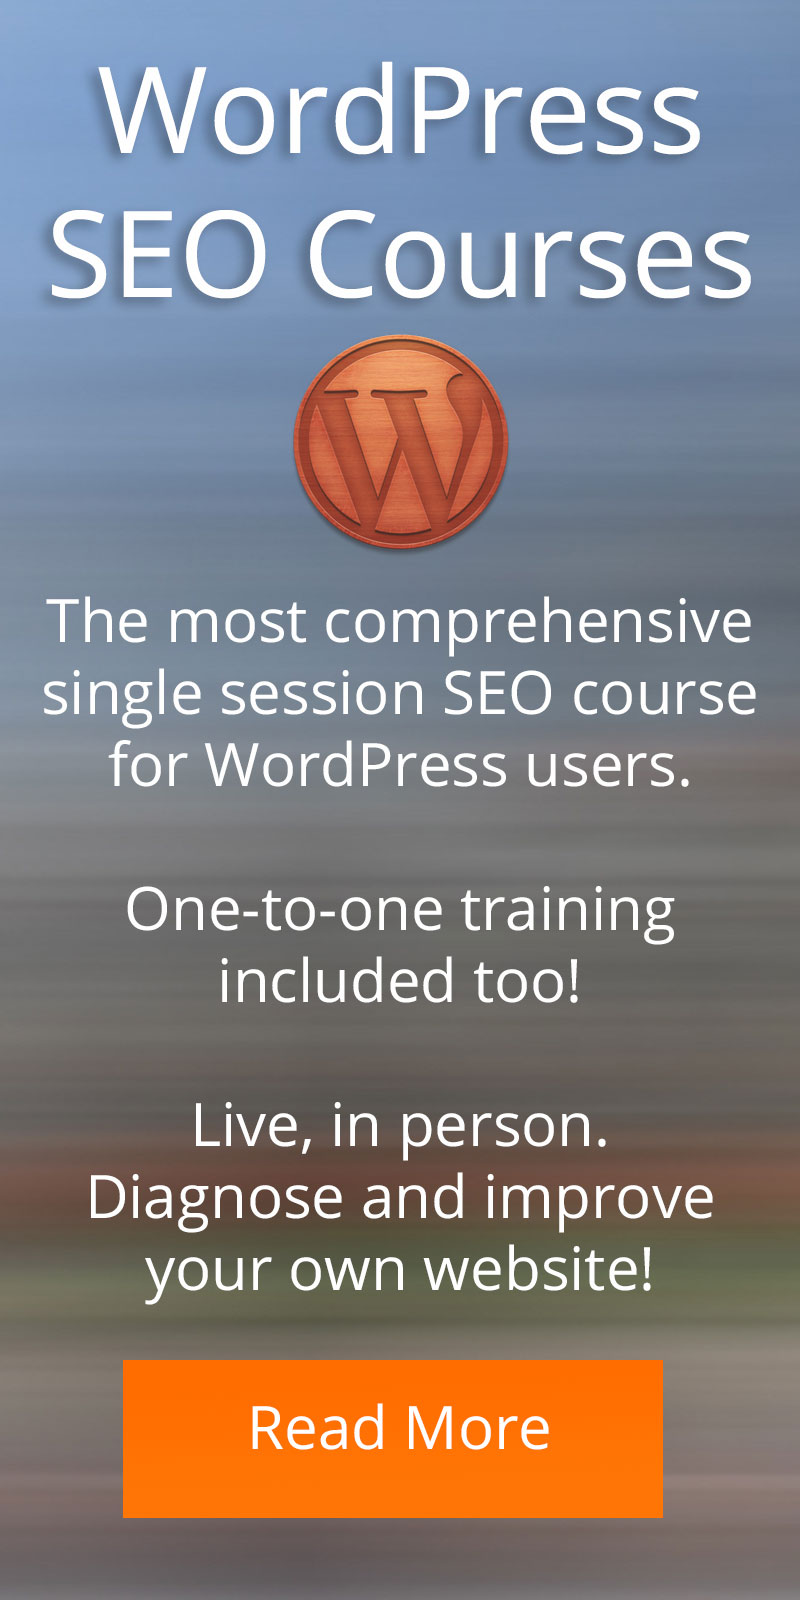 learn more about courses for WordPress Search Engine Optimisation